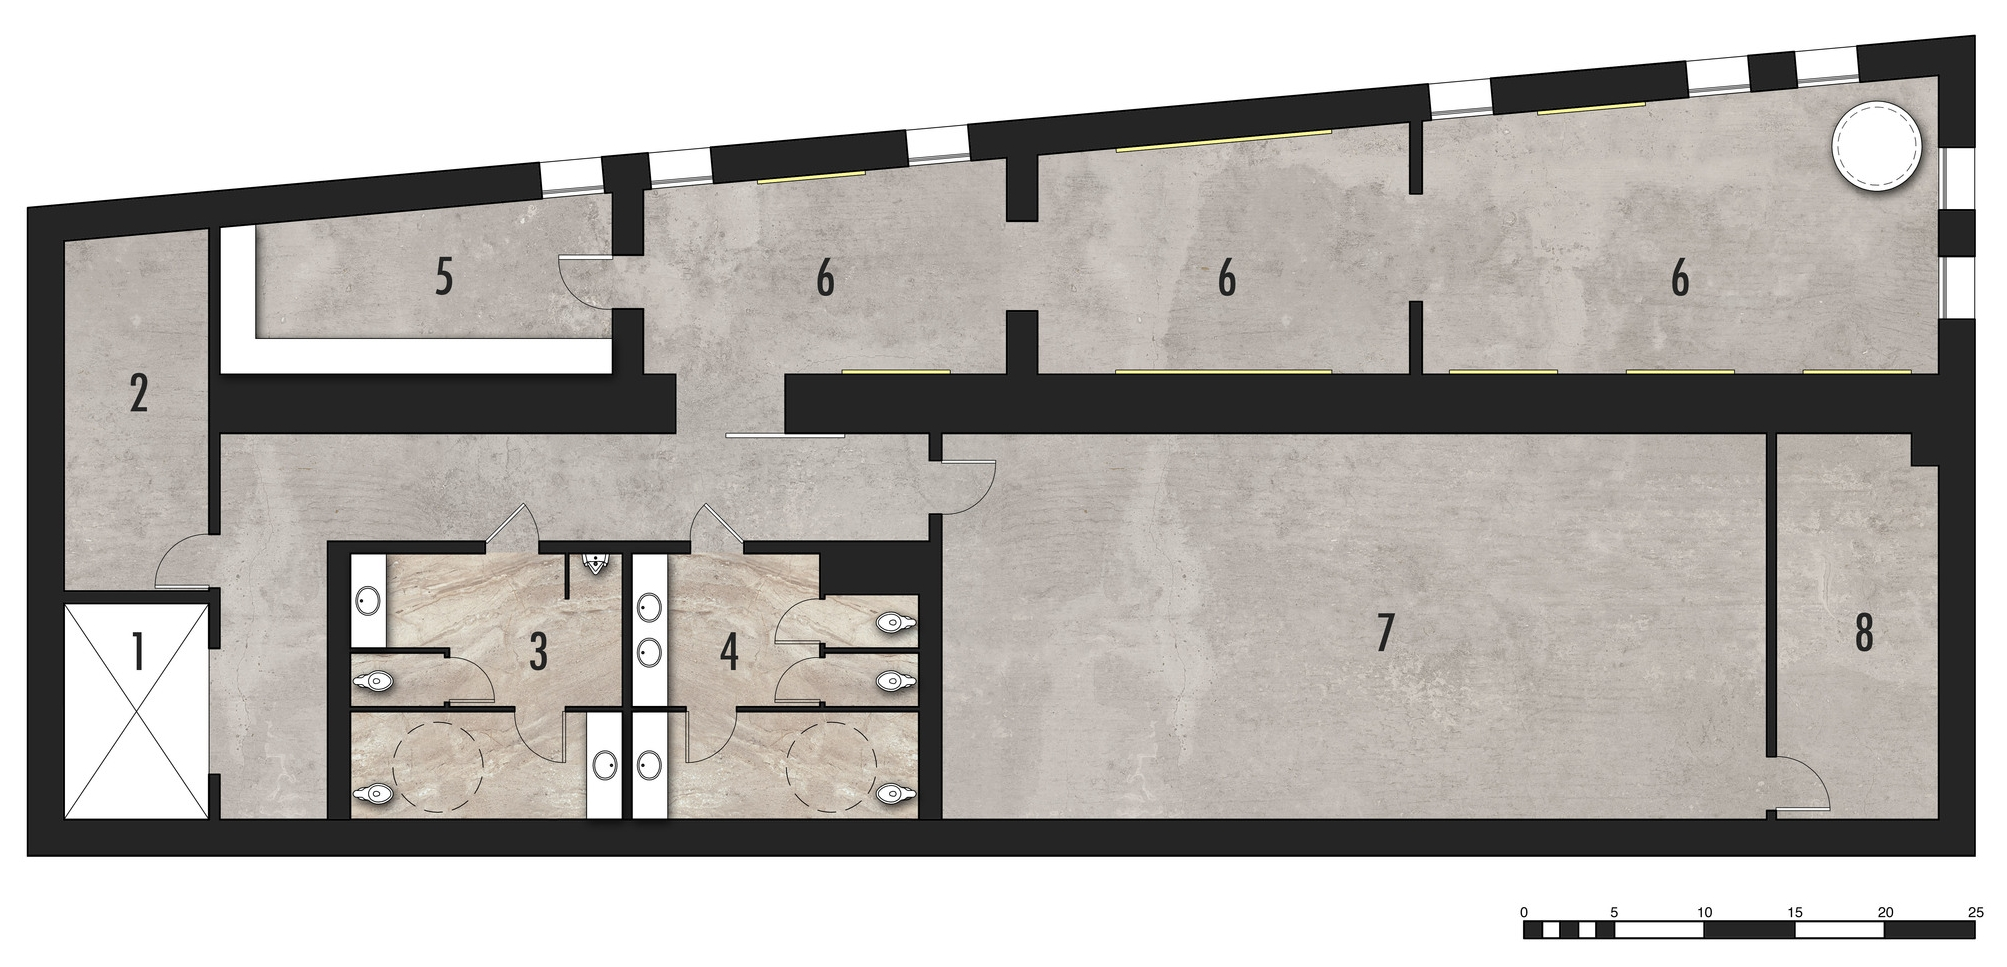 Lower Level Plan   1.Elevator   2.Fire Stair   3.Mens' Restroom   4.Womens' Restroom   5.Storage   6.Galleries   7.Private Artwork Storage   8.Mechanical Room